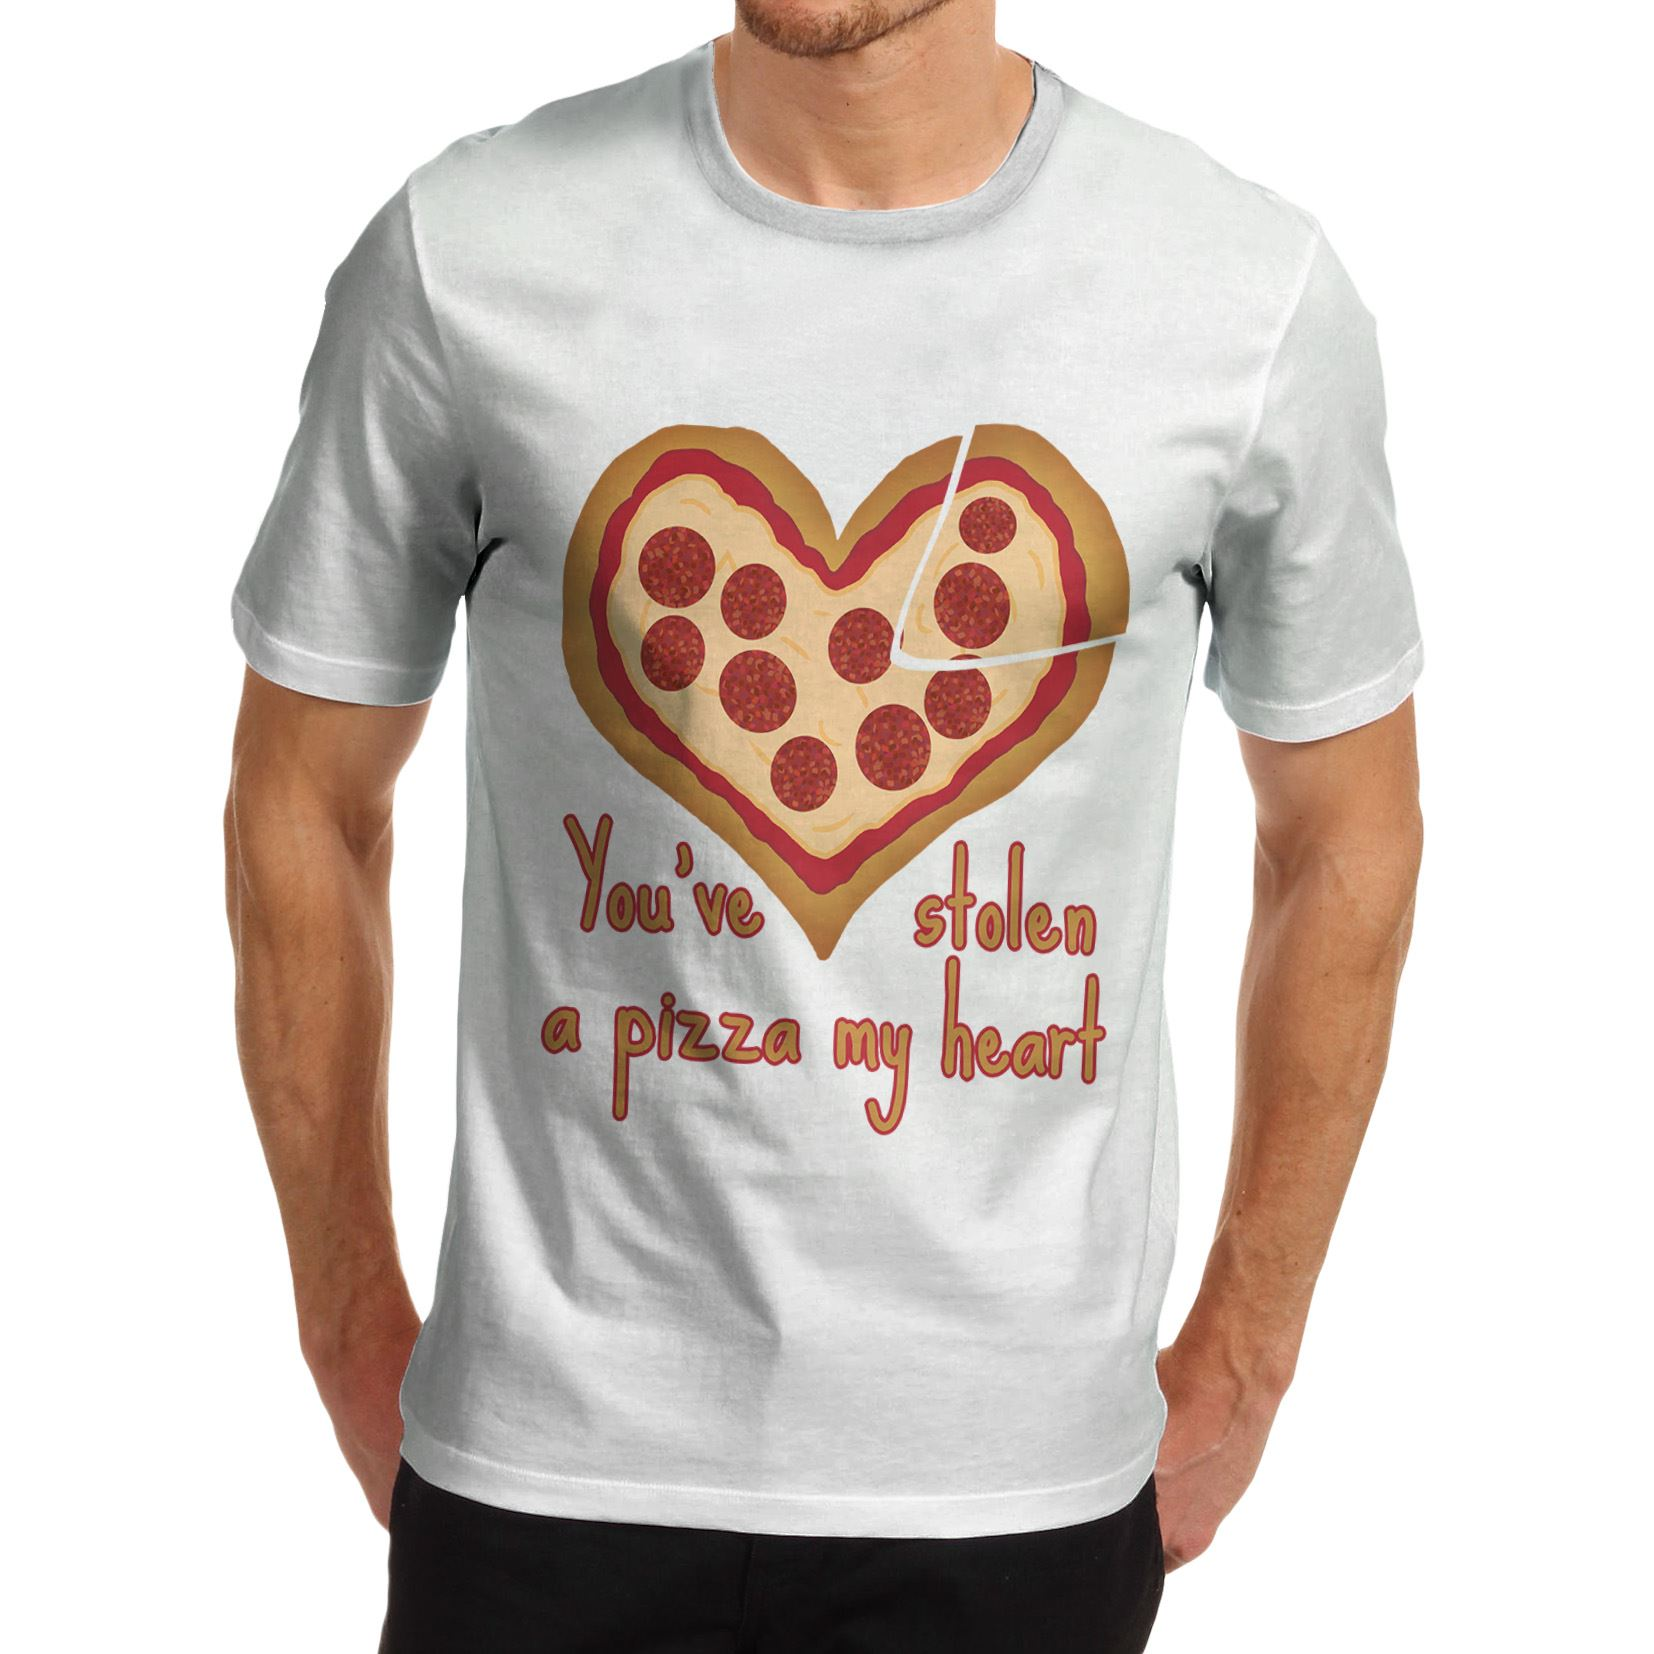 Heart design t shirt - Twisted Envy Quality Short Sleeve Crew Neck T Shirts Are 100 Cotton And Are Soft And Durable For A Comfortable Feel Fit Is Standard Size Up In Doubt